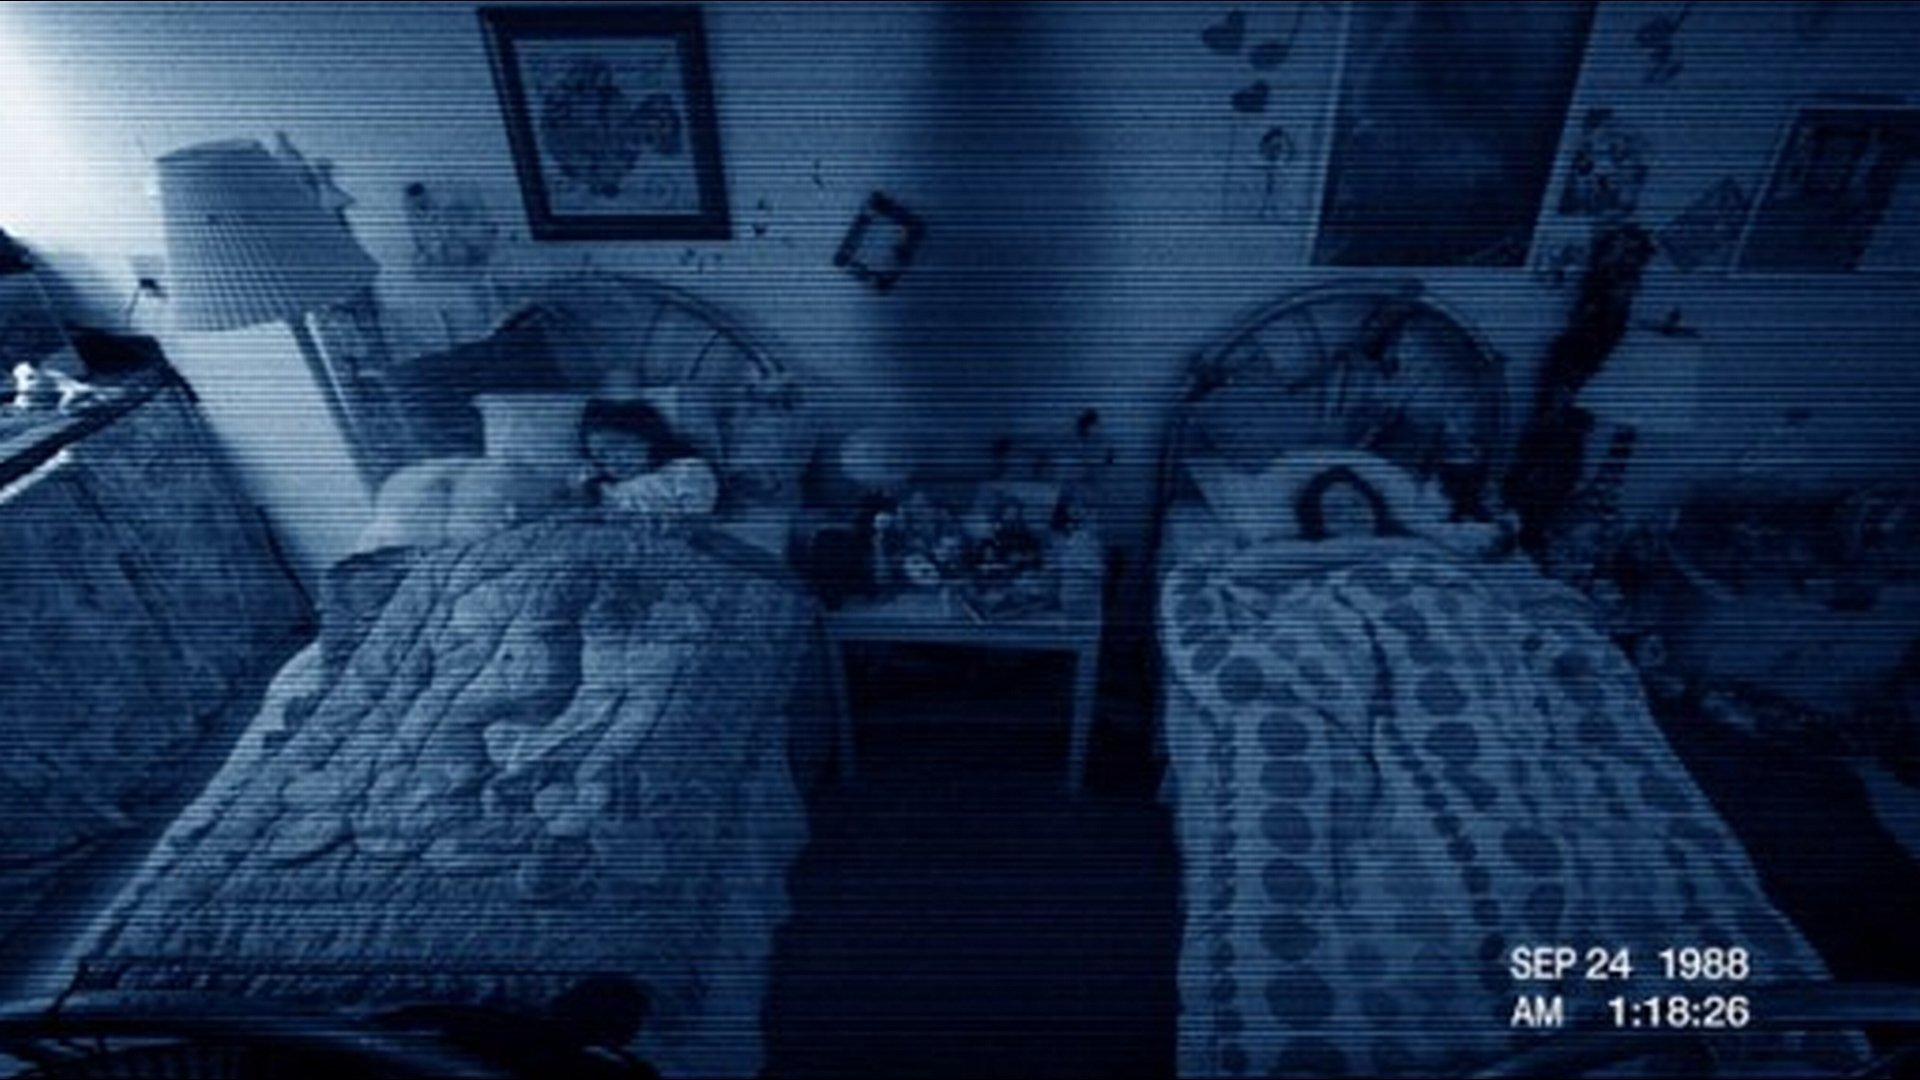 paranormal activity 3 download free full movie hd